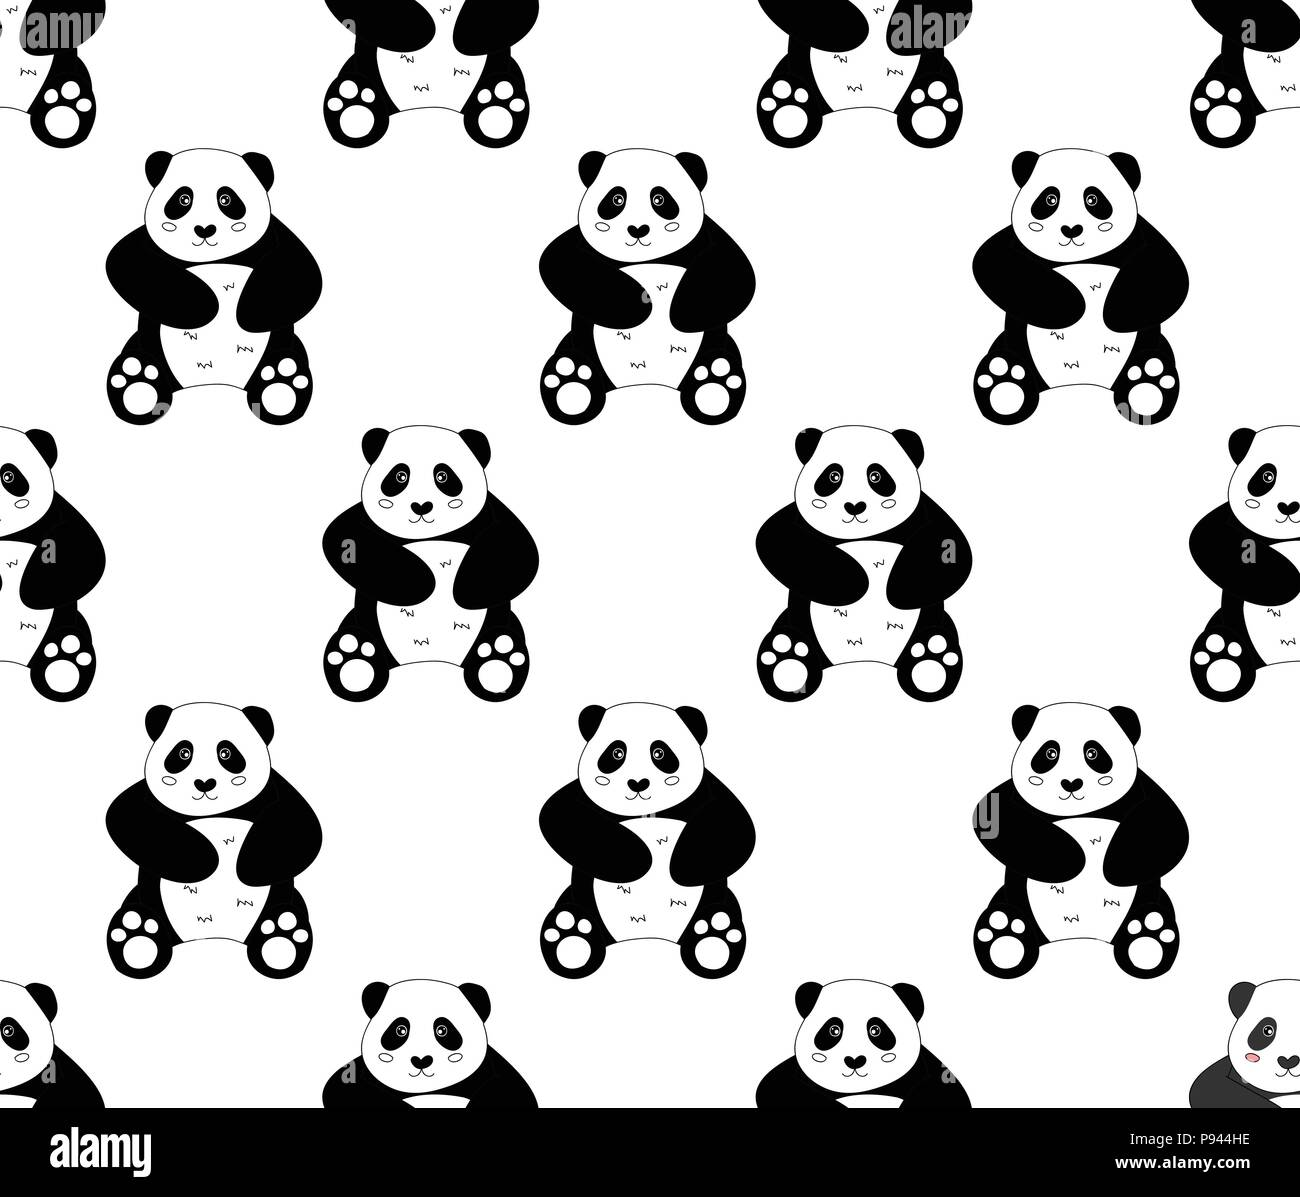 Panda Wallpaper Black And White Stock Photos Images Alamy